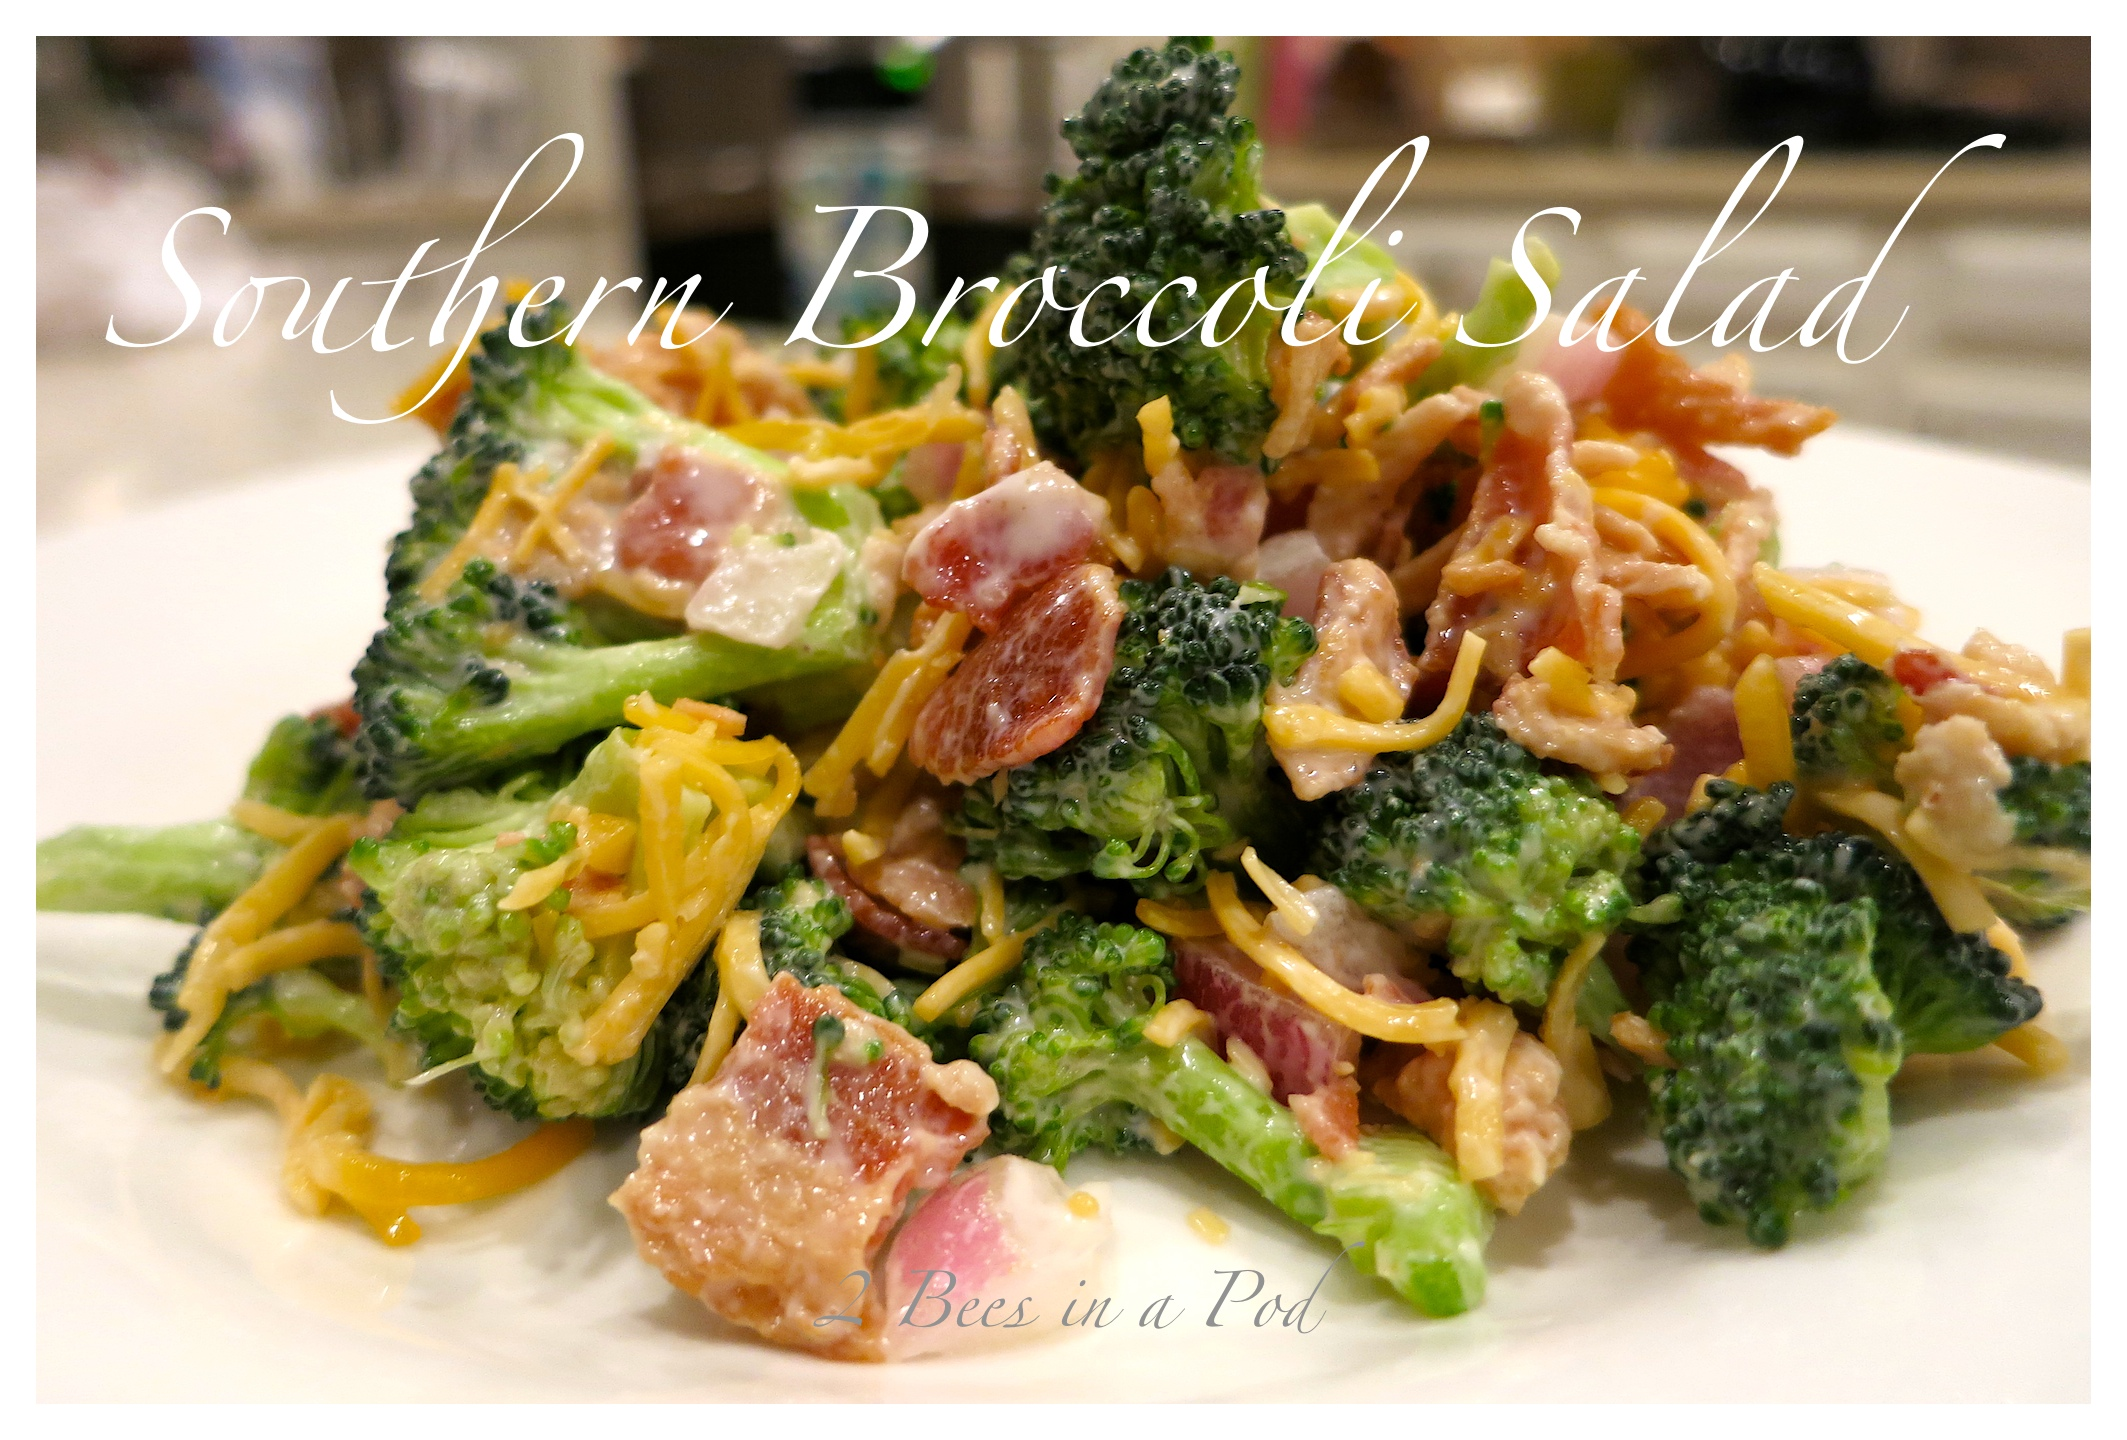 Southern Broccoli Salad. Smokey bacon, tangy vinegar , broccoli, red onion. Great picnic or cookout salad.